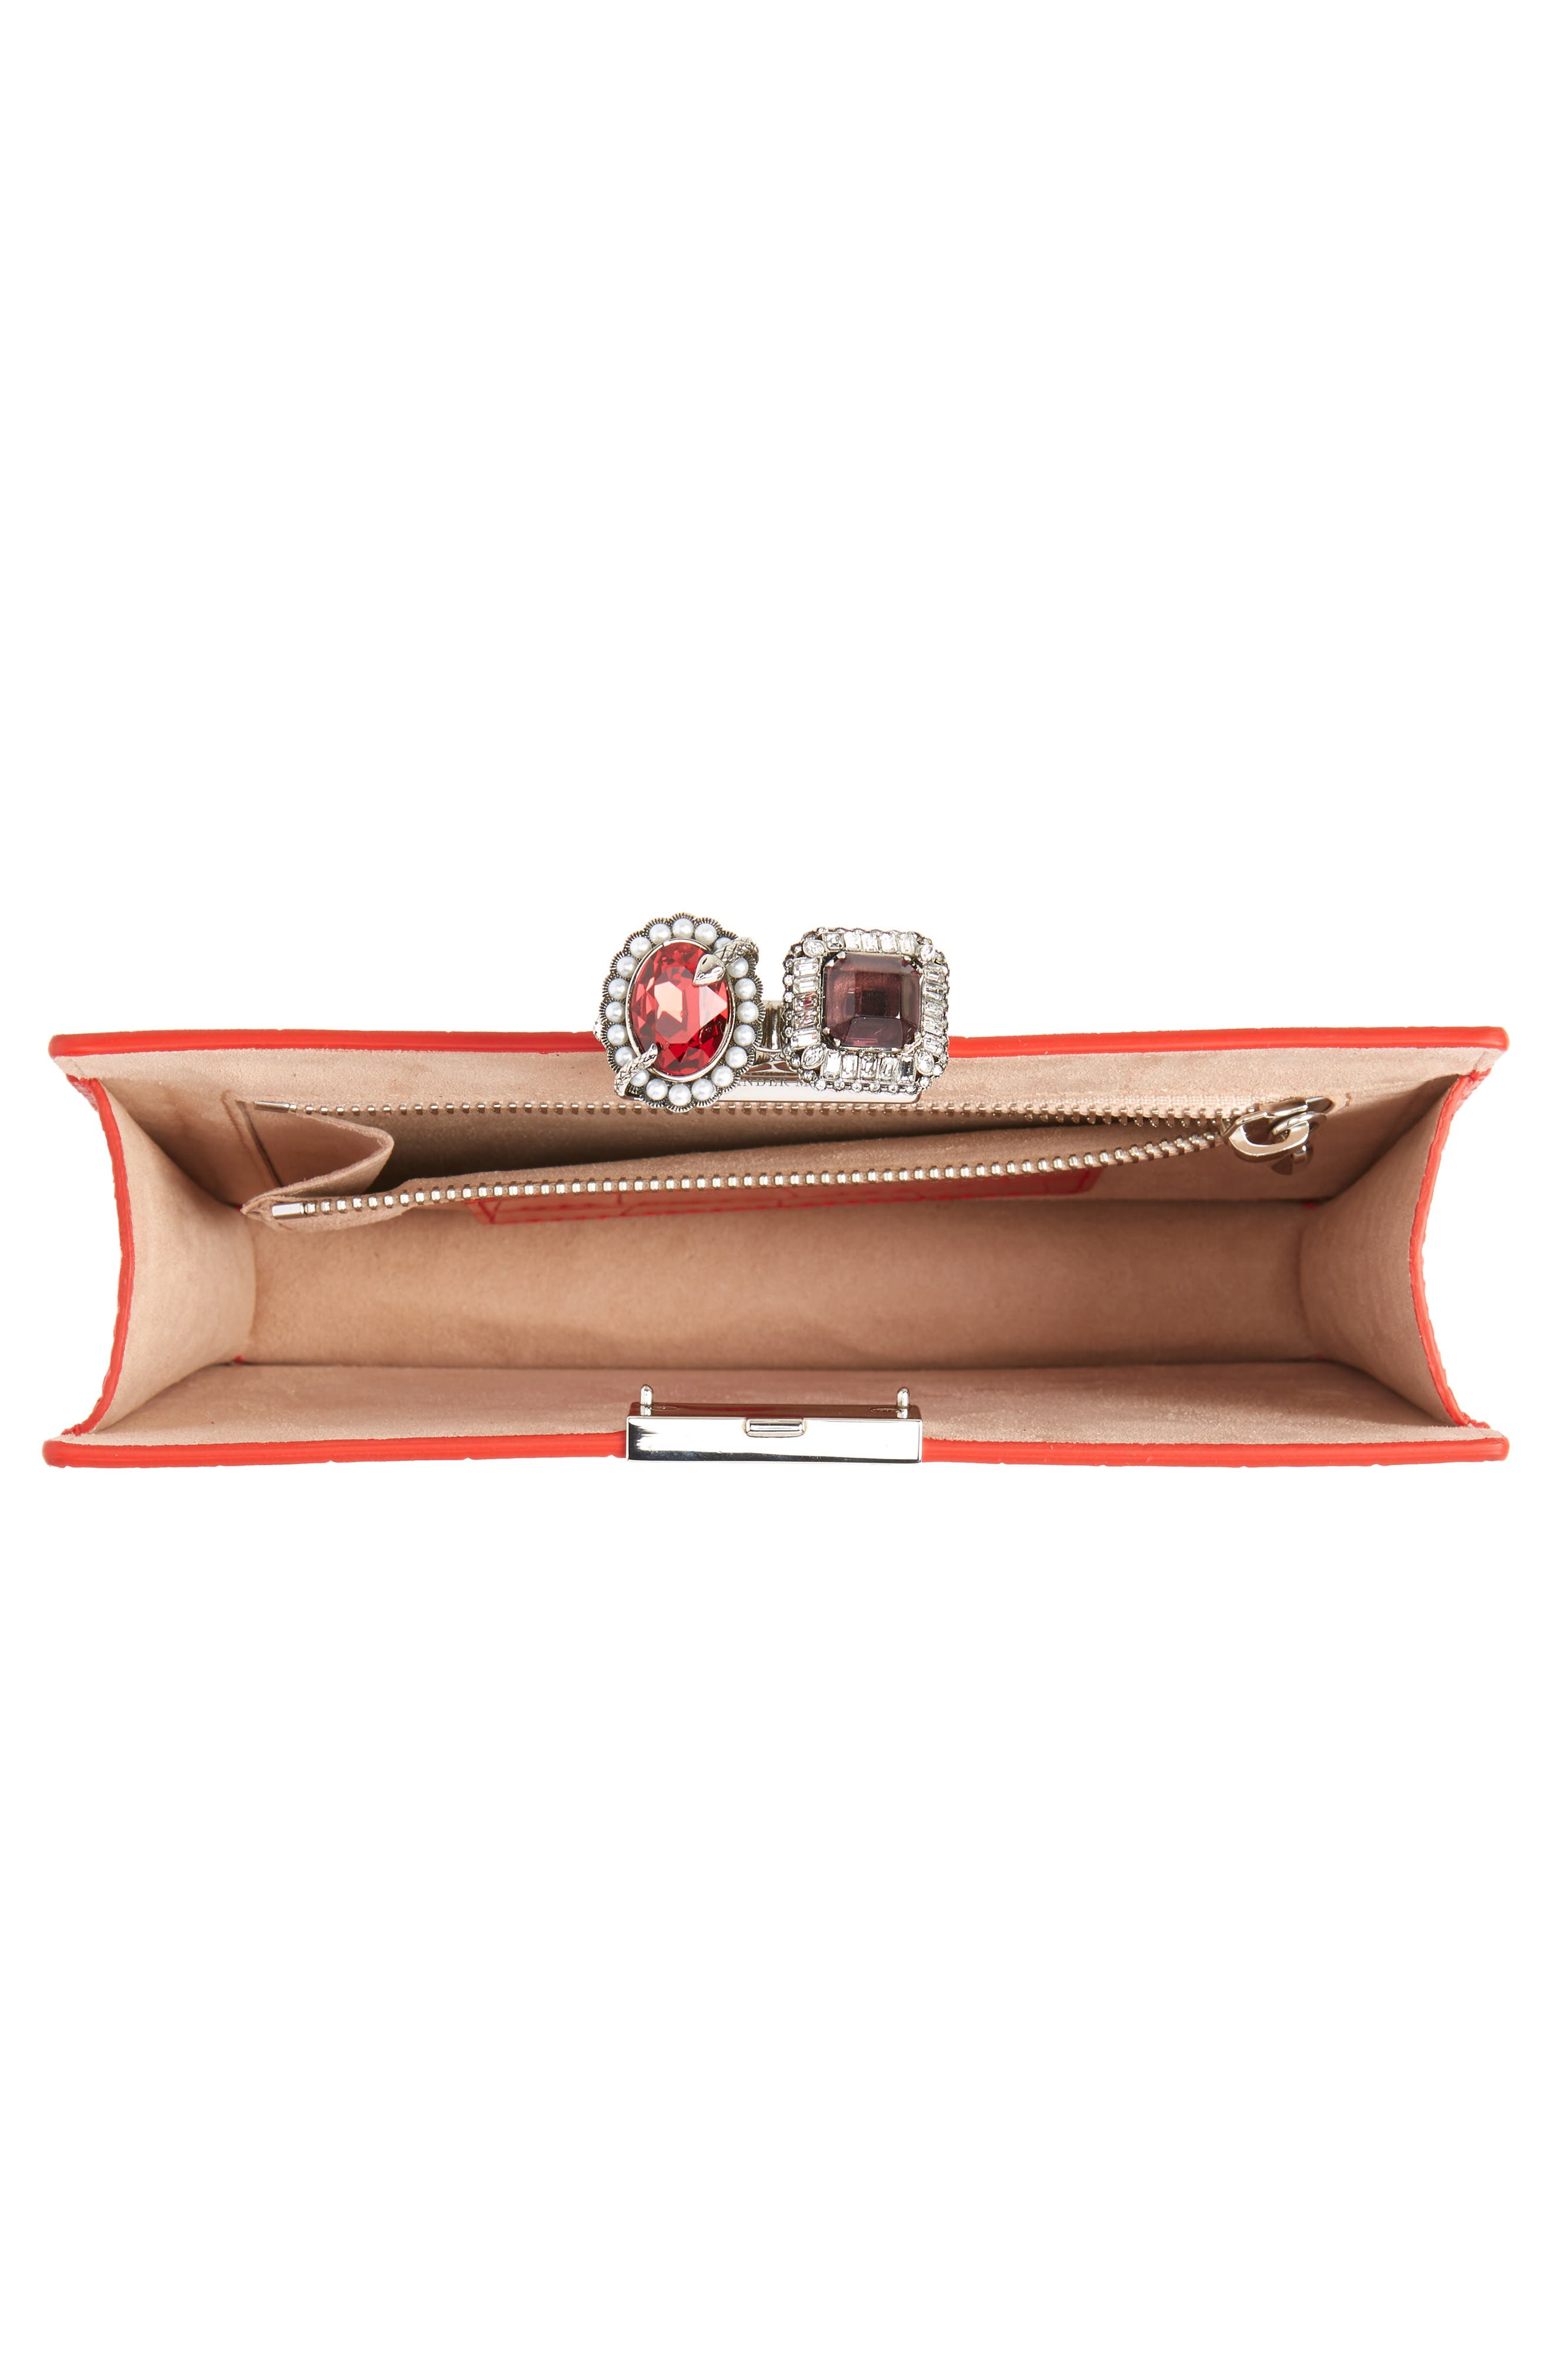 Croc Embossed Calfskin Leather Double Ring Clutch,                             Alternate thumbnail 4, color,                             LUST RED